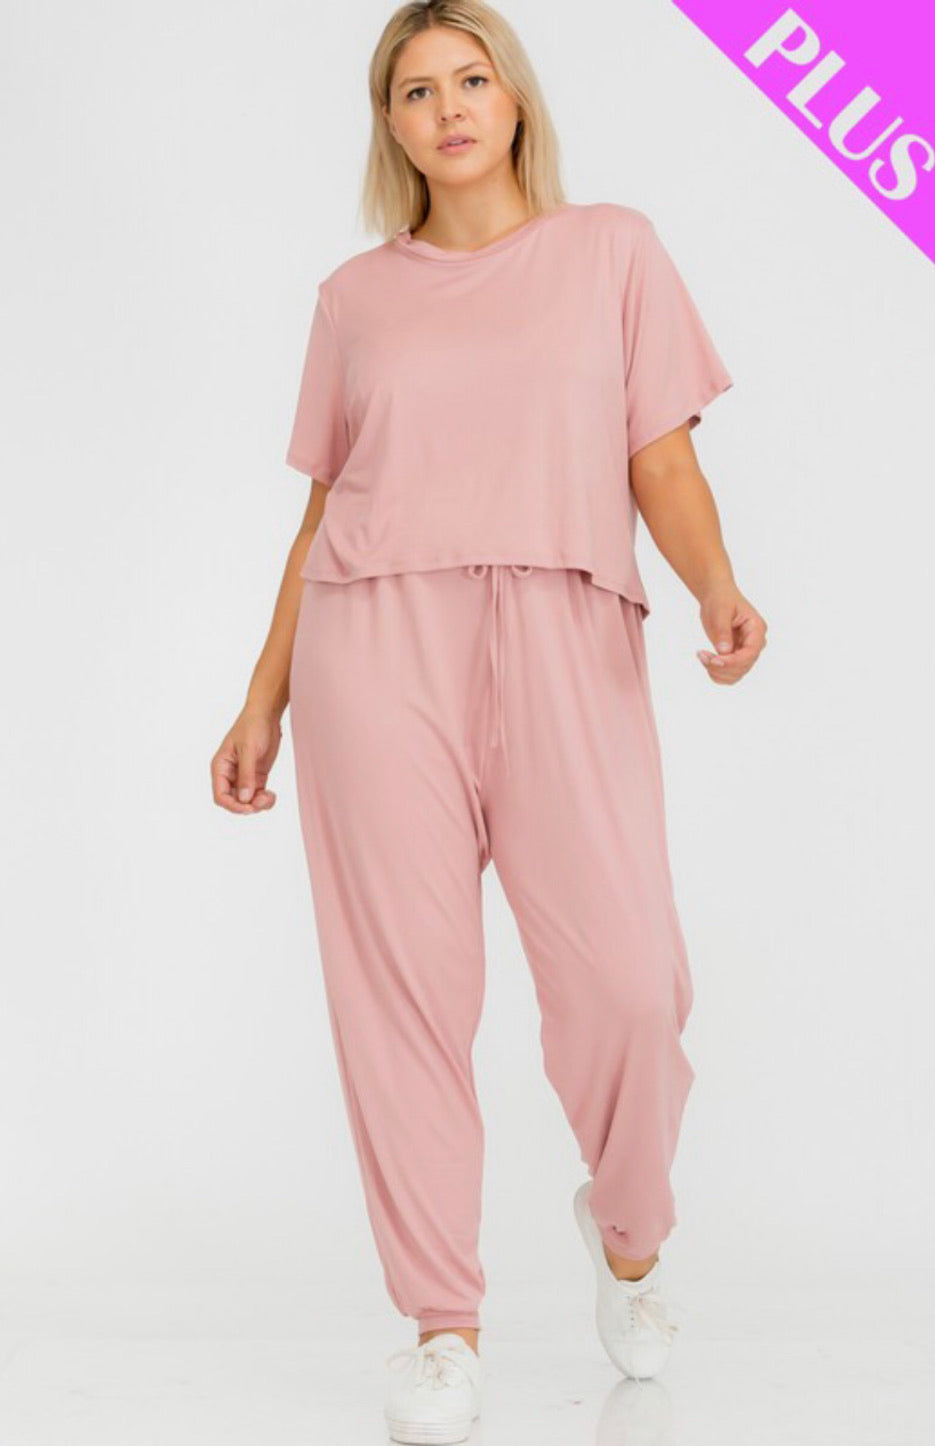 Plus size basic top and pants set